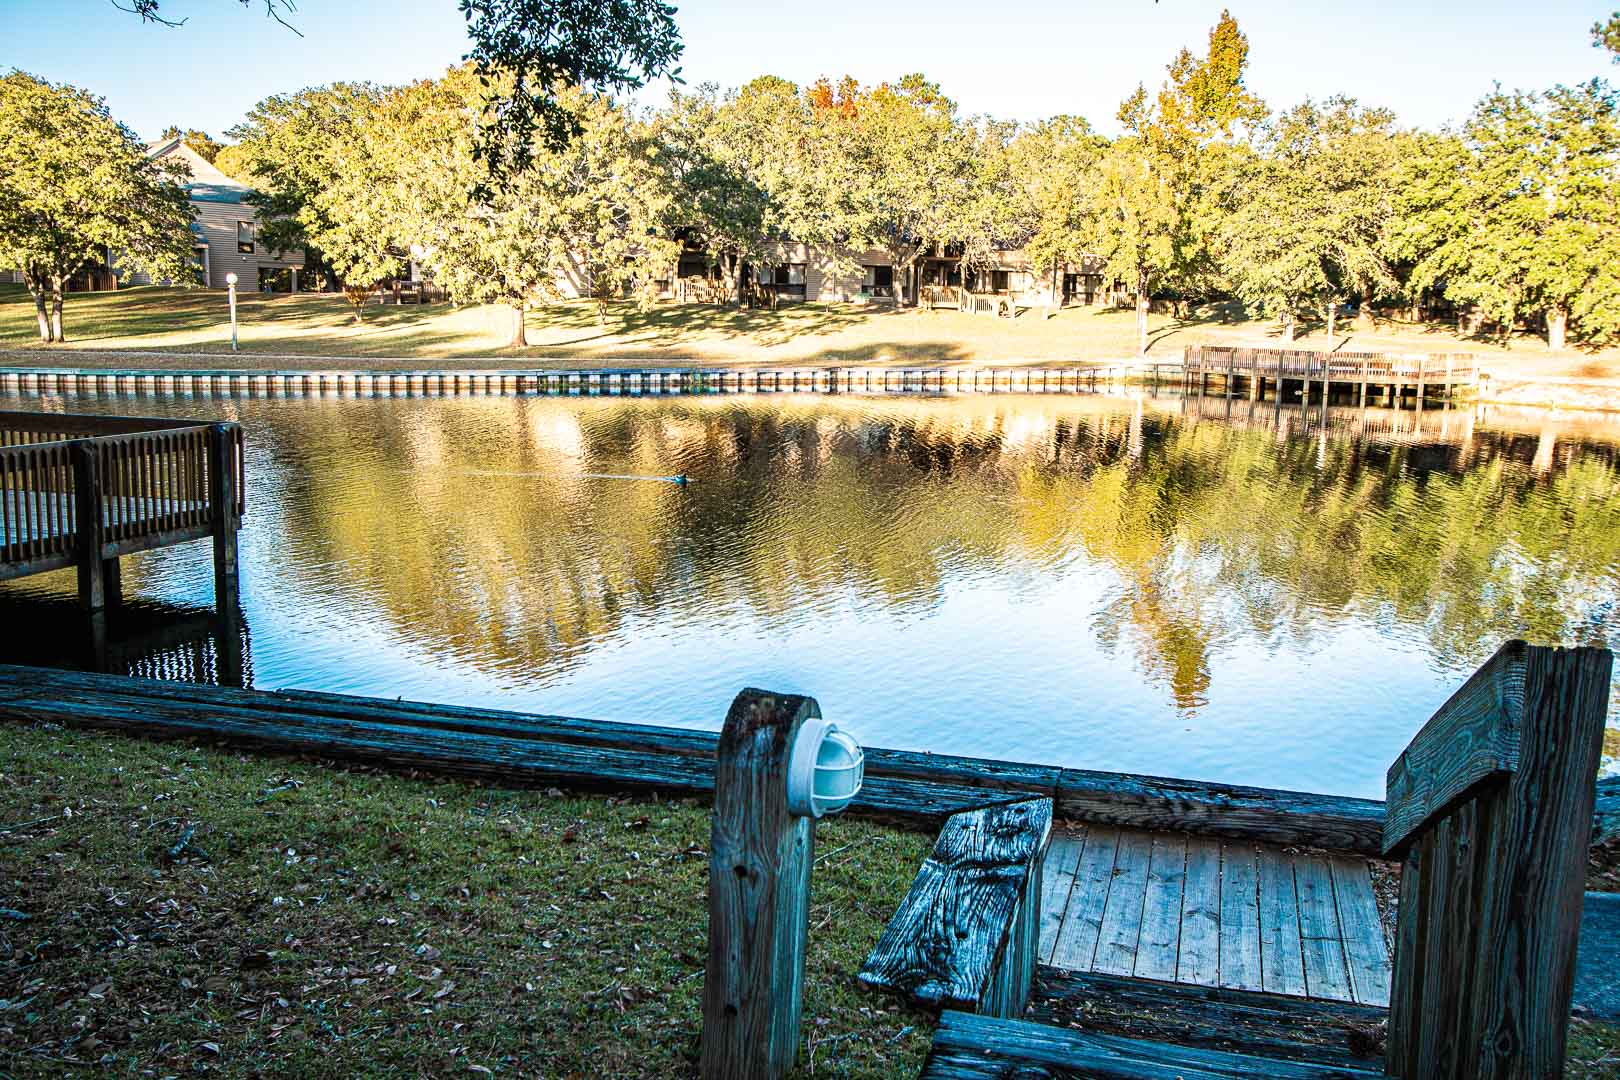 A peaceful view from the lake at VRI's Sandcastle Cove in New Bern, North Carolina.